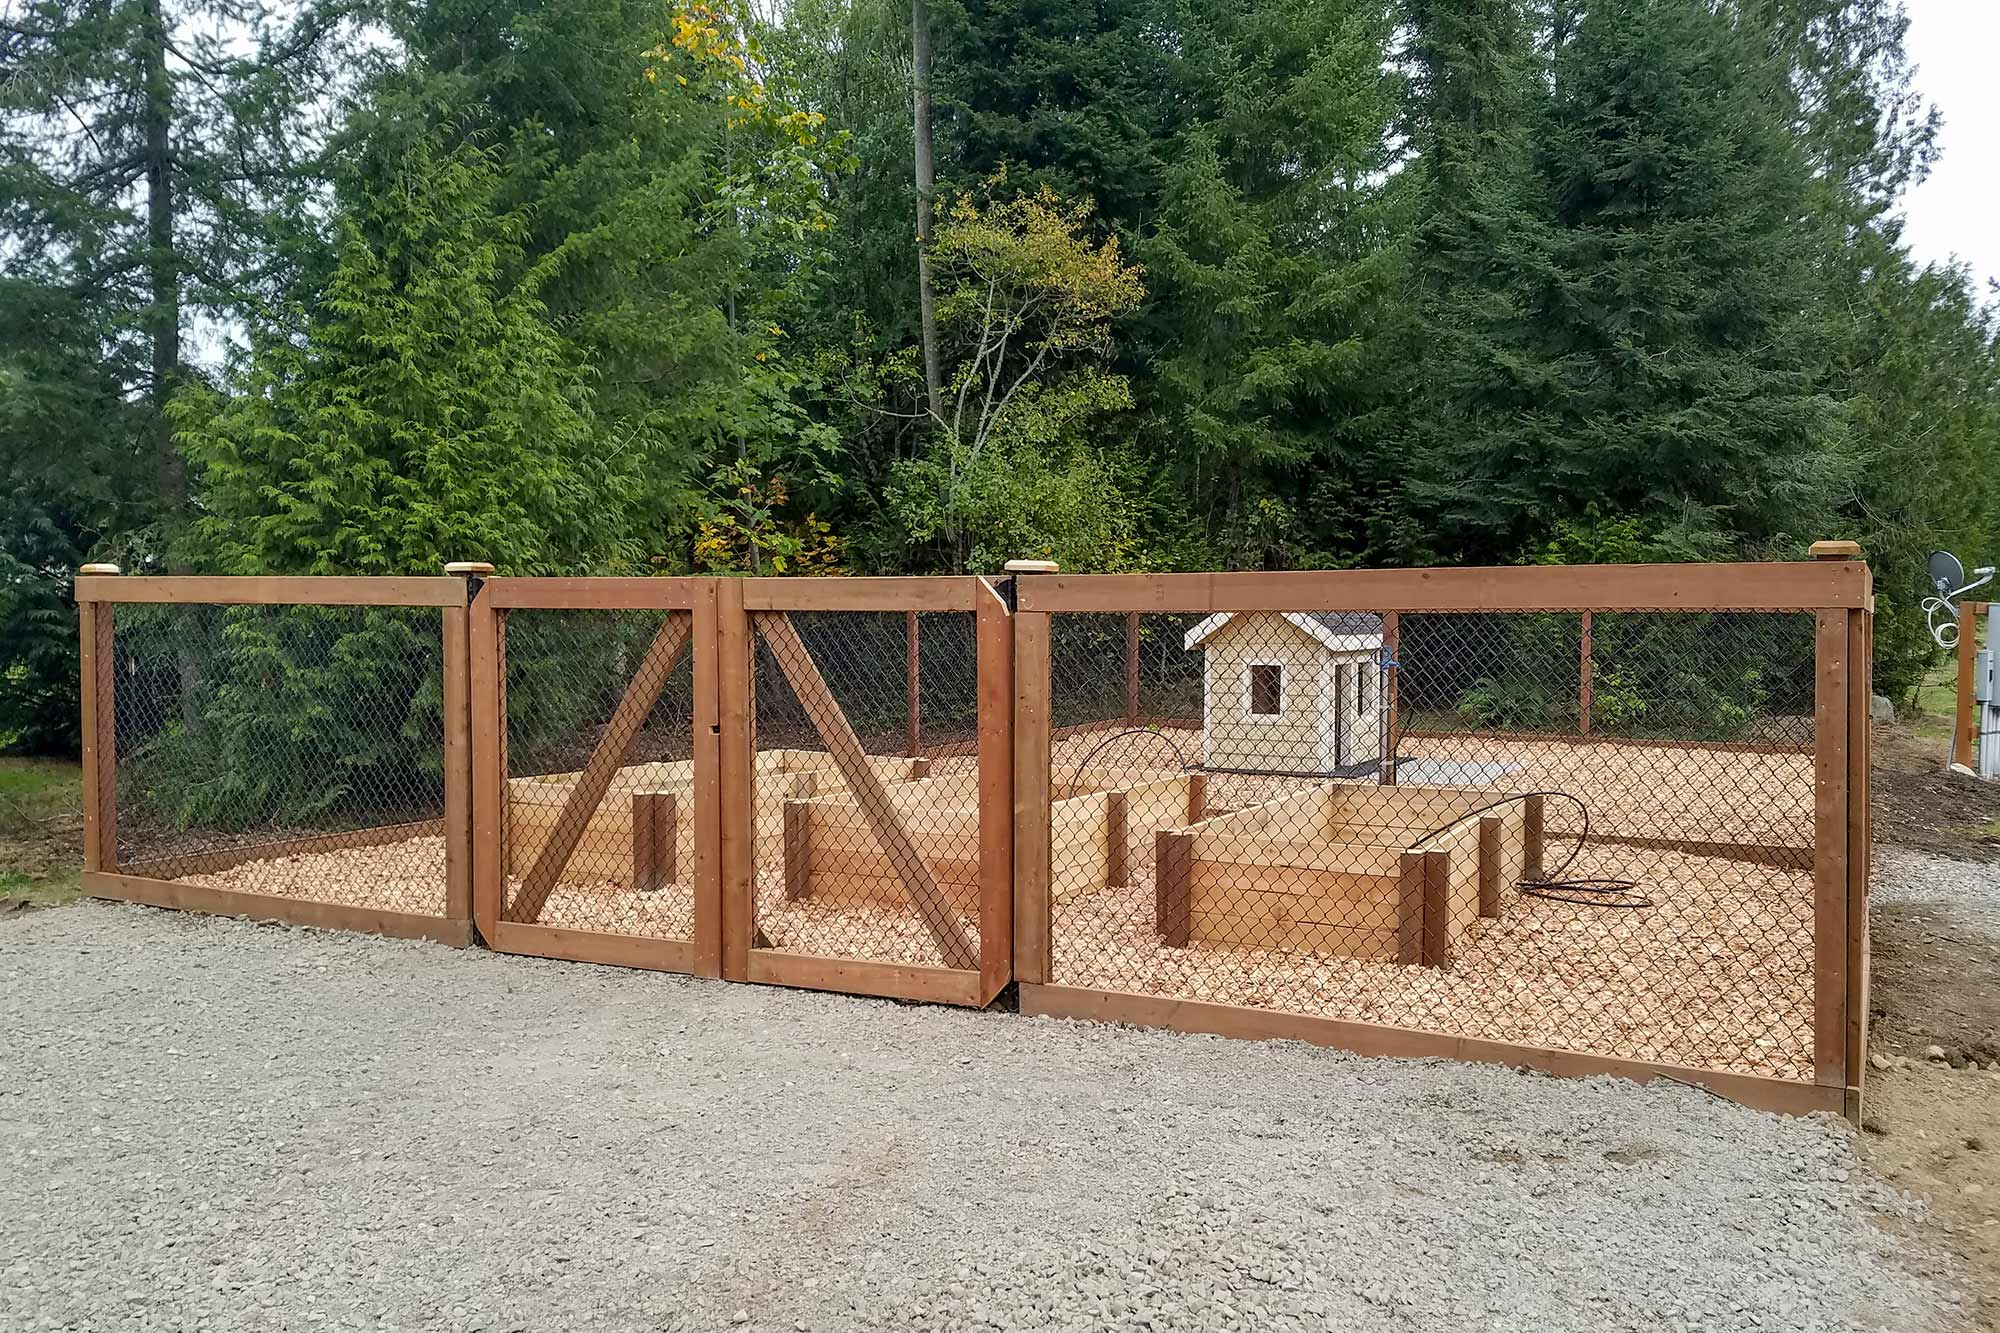 AJB Landscaping U0026 Fence Built This Unique Outdoor Dog Kennel That Doubles  As A Raised Garden